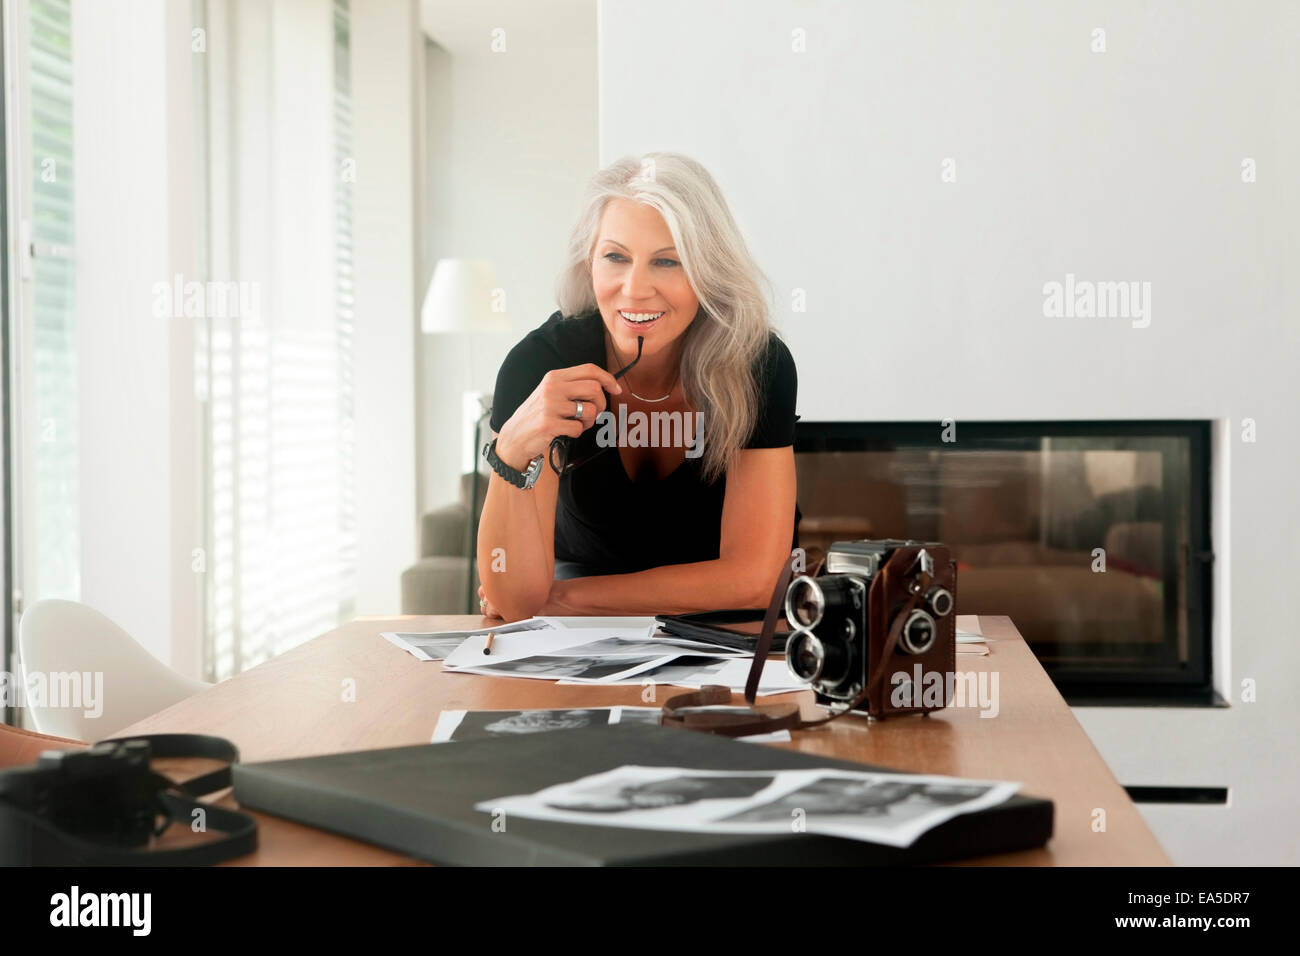 Female photographer with photographs and old fashioned large format camera on a table - Stock Image